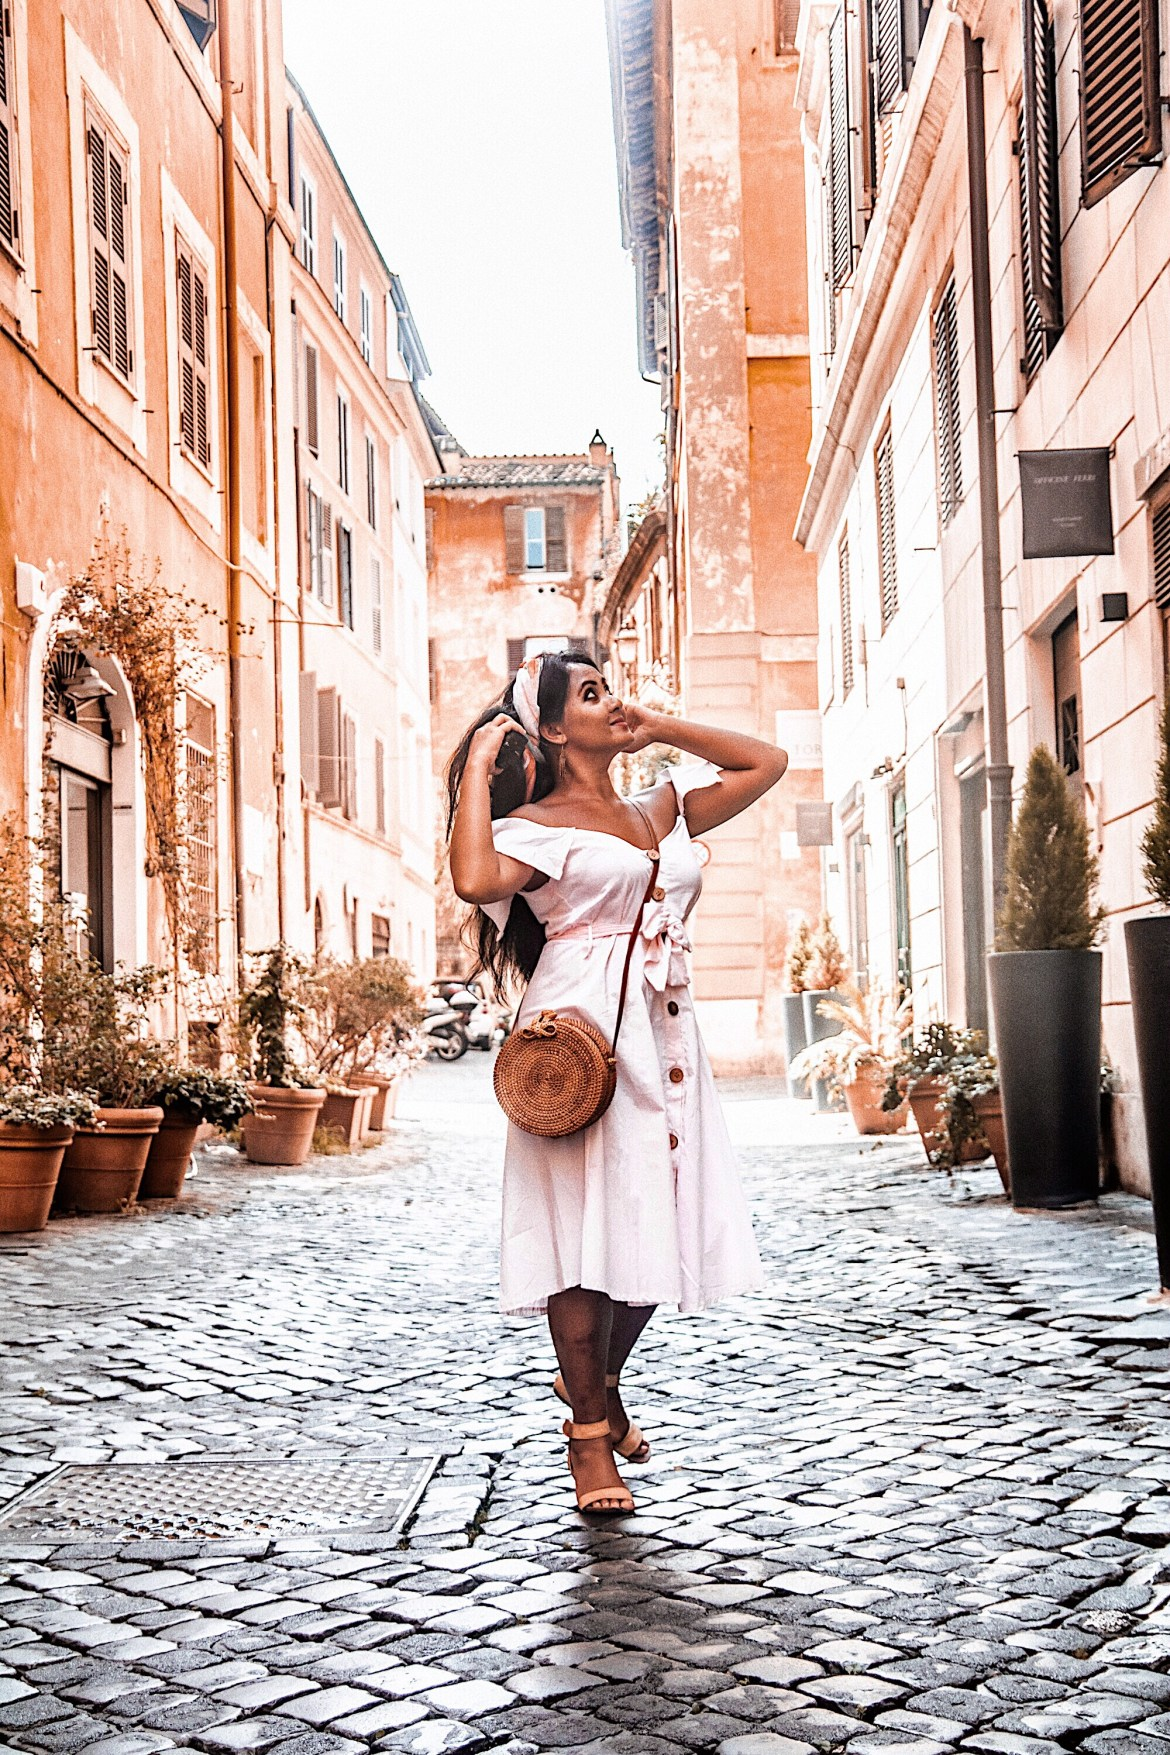 How-To-Wear-Off-Shoulder-Dress-Light-Blush-Pink-Button-Down-Dress-Rattan-Straw-Basket-Bag-Flat-Sandal-Headwrap-Paris-Chic-Style-Fashion-Lookbook-Street-Style-Rome-Italy-ootd Outfit Of The Day-6